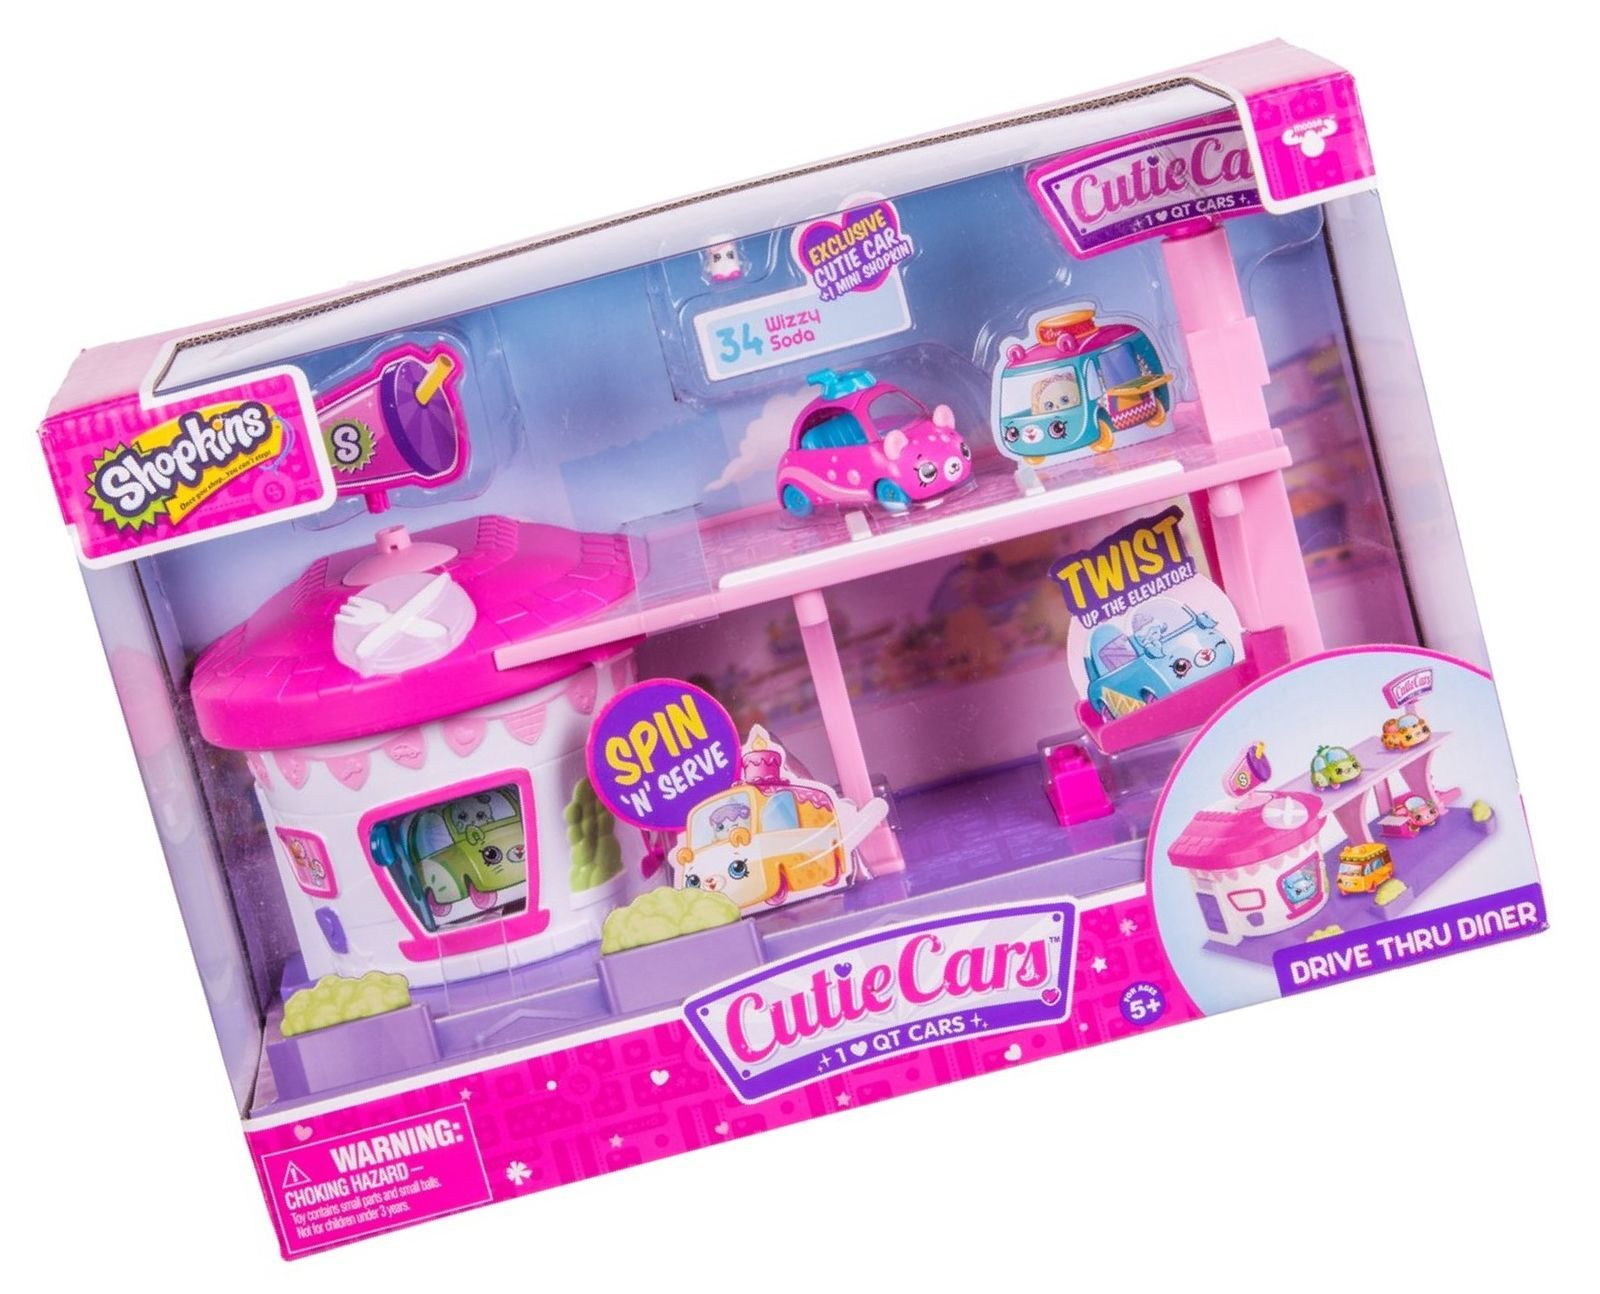 Cutie Cars Shopkins Drive Thru Diner Playset [New Toy Set]